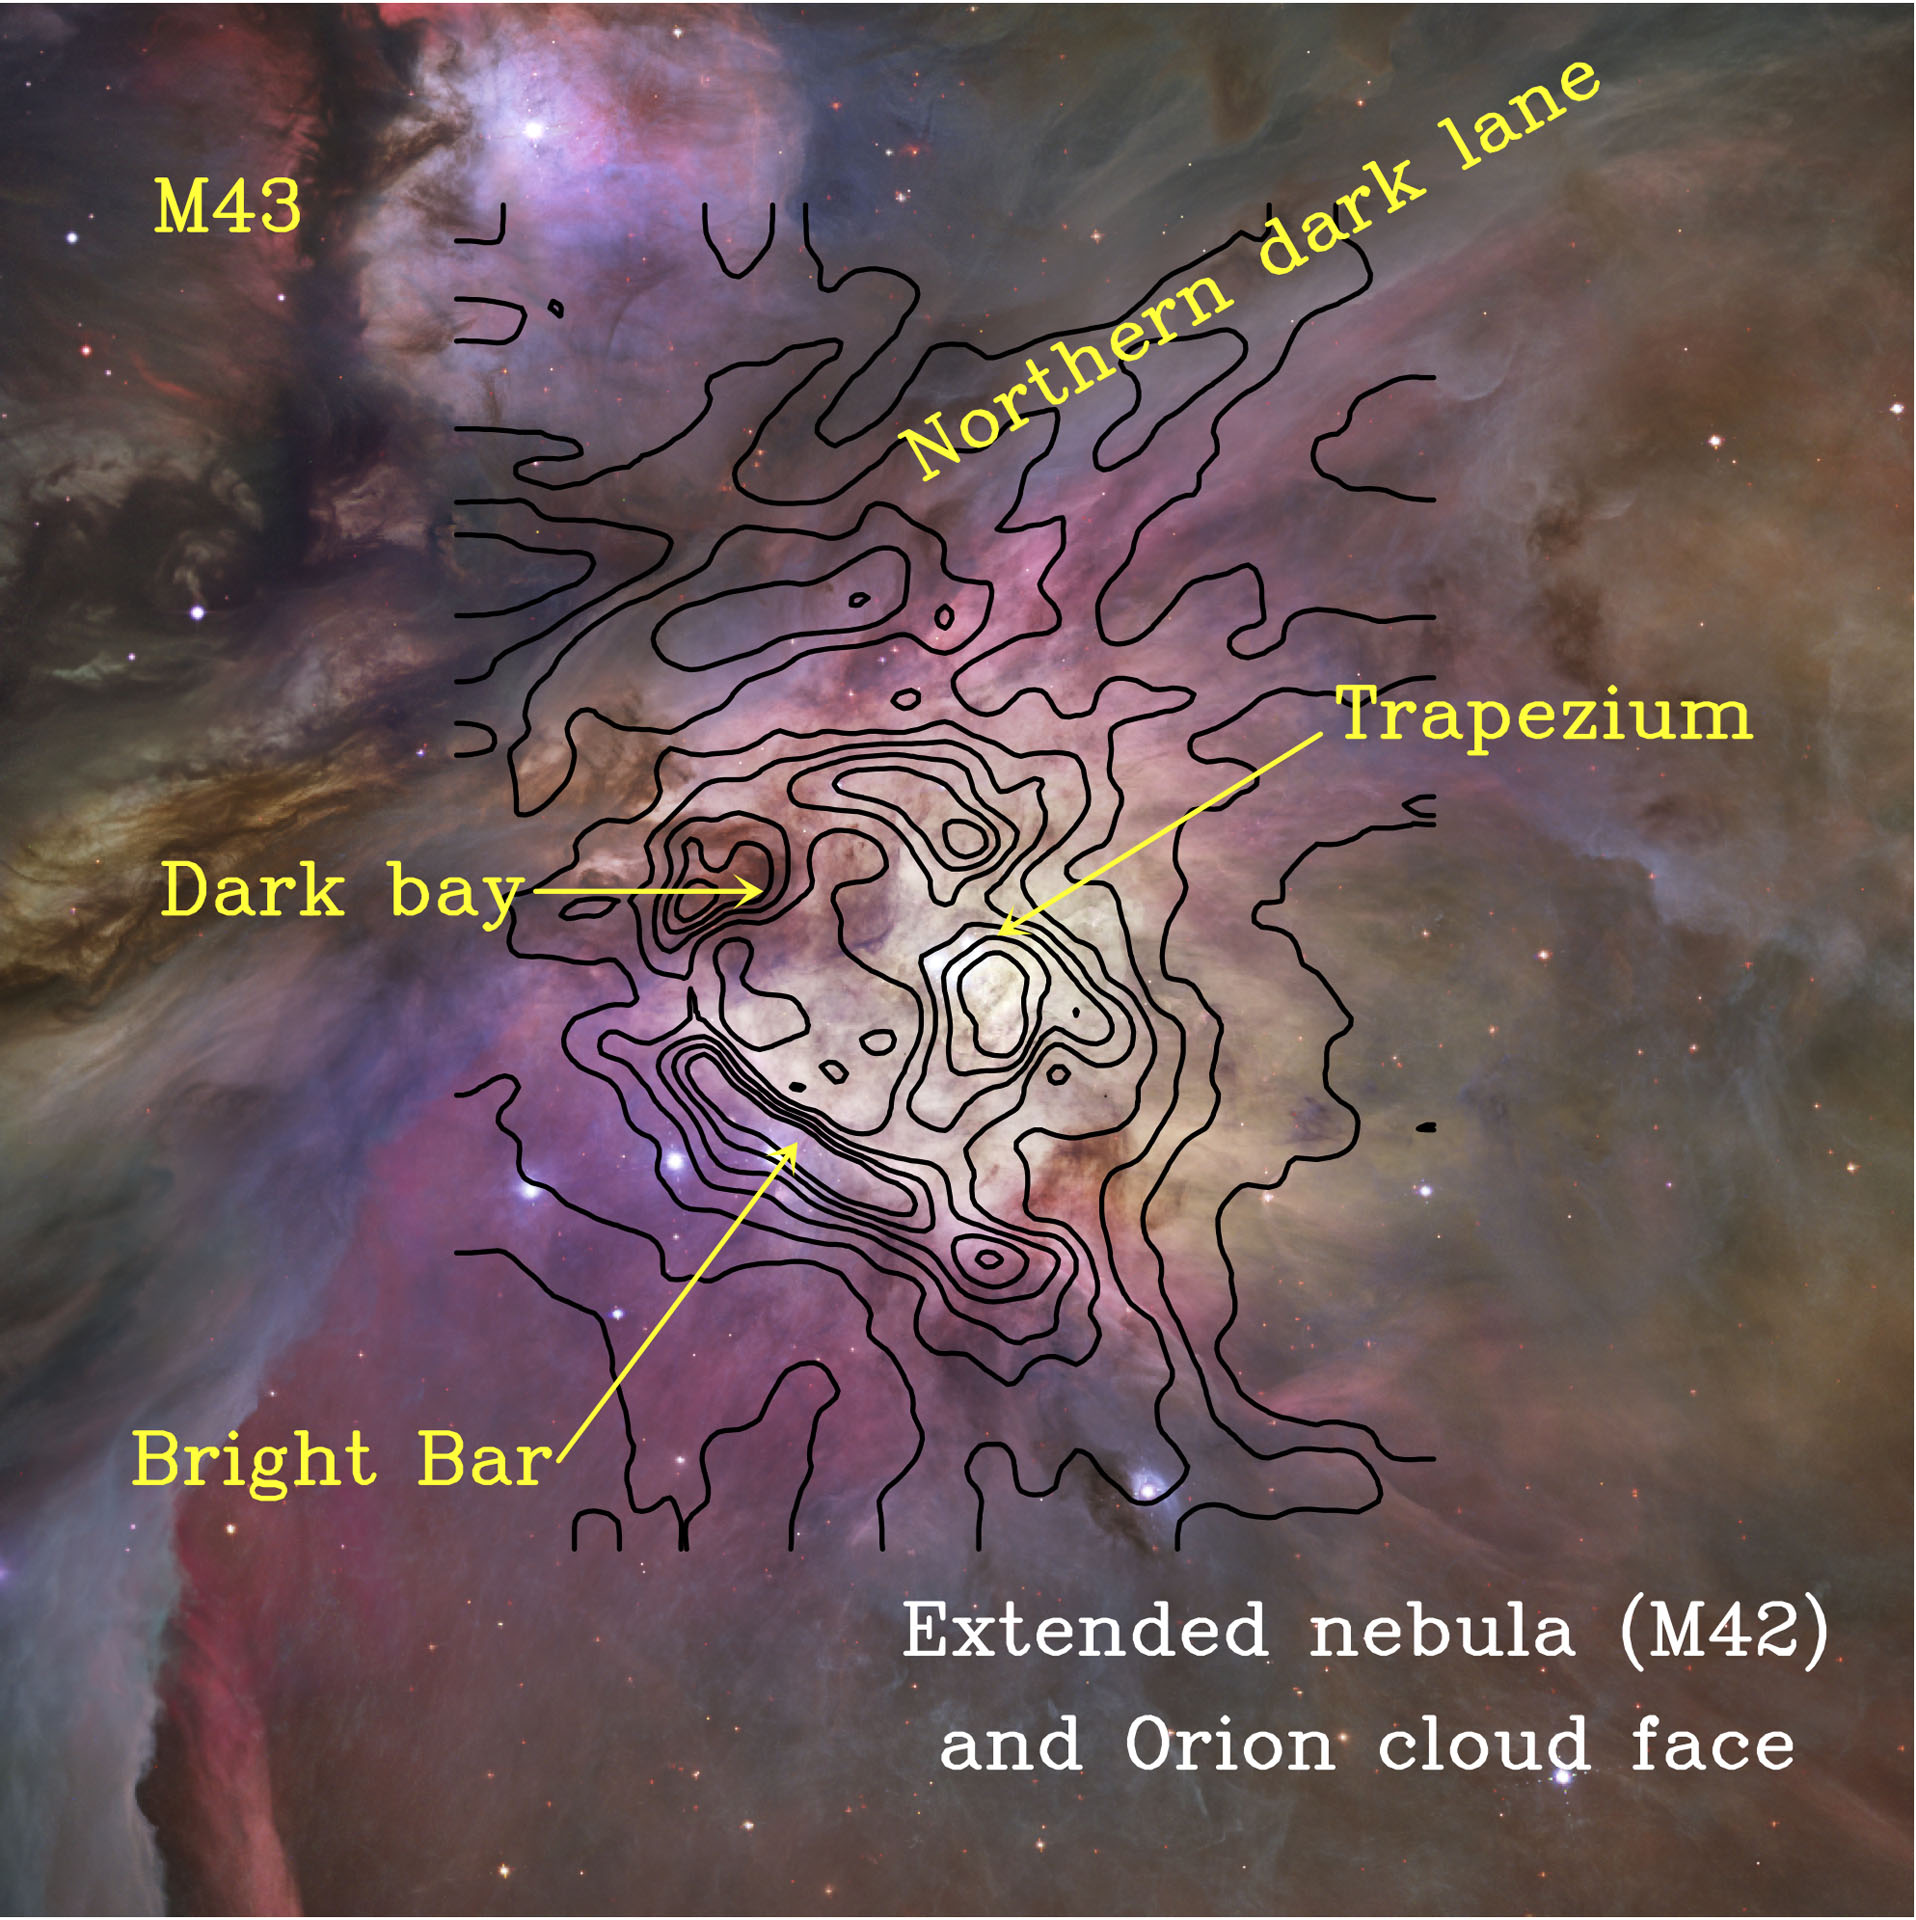 Colour-composite image of the Orion Nebula (M42) taken in the visible-light with the Hubble Space Telescope (Robberto et al. 2013). The Orion molecular cloud, where new protostars are developing, lies behind the ionized nebula. Black contours show the far infrared C+ emission detected with Herschel/HIFI tracing the skin of the cloud (Goicoechea et al. 2015)